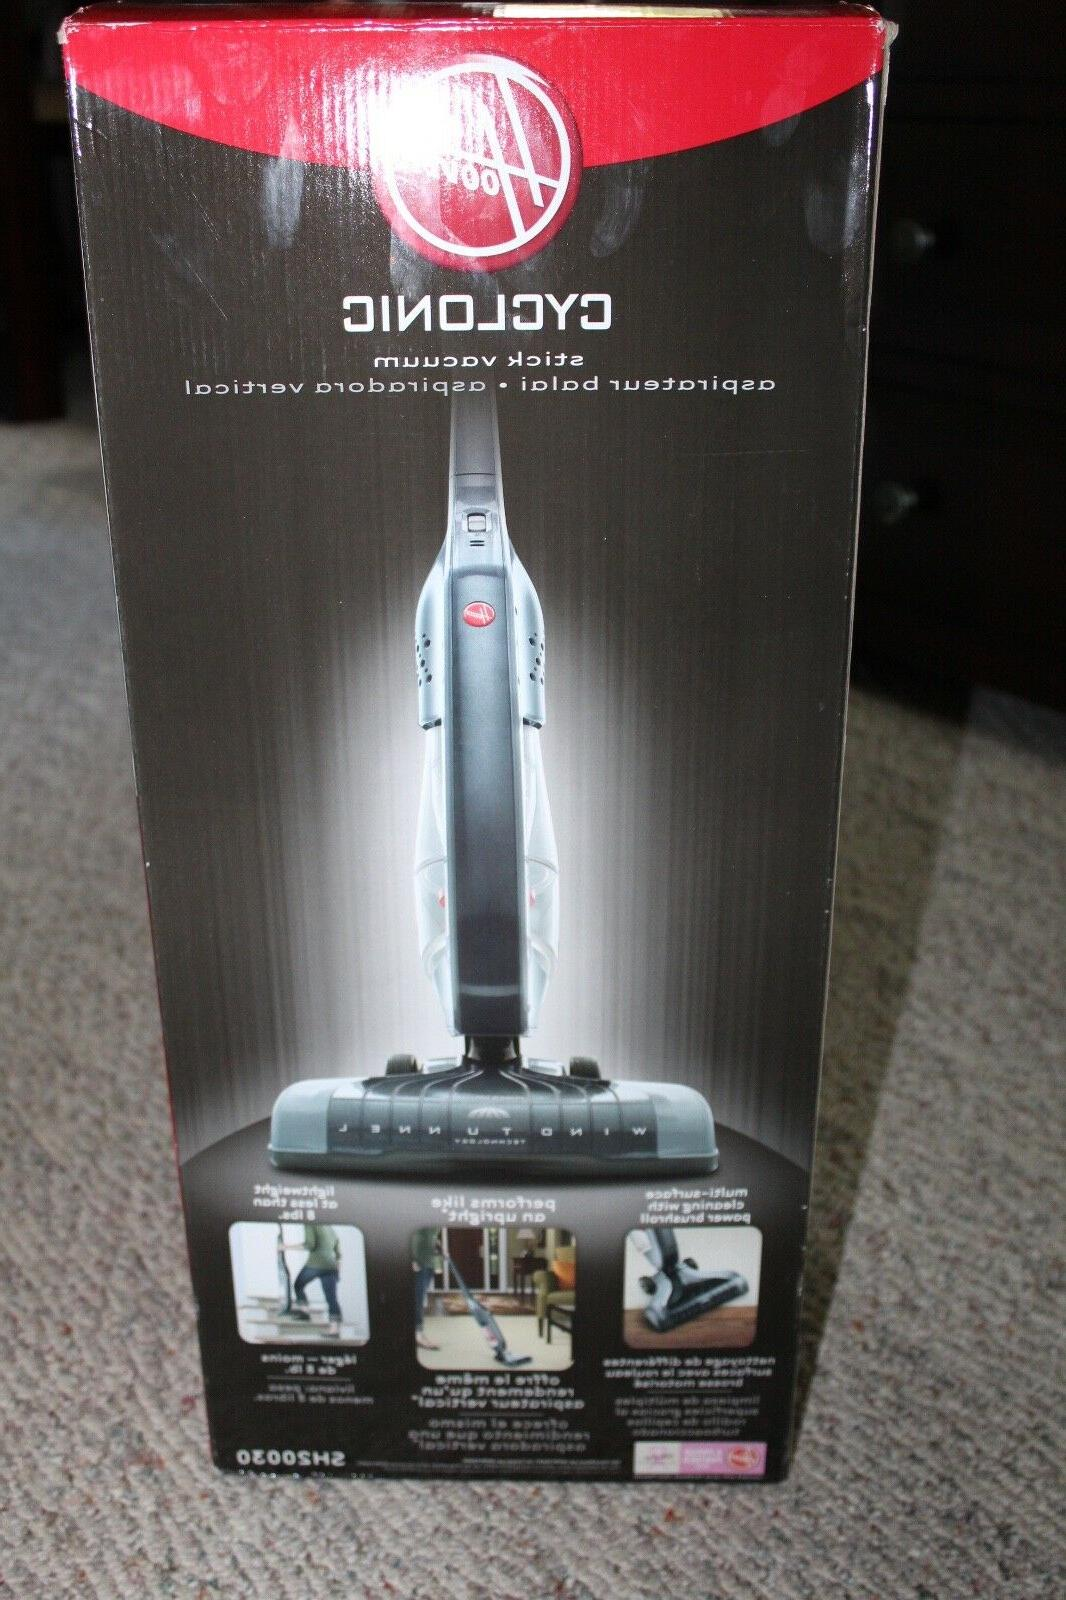 Hoover Corded Bagless Cyclonic Stick Vacuum, SH20030